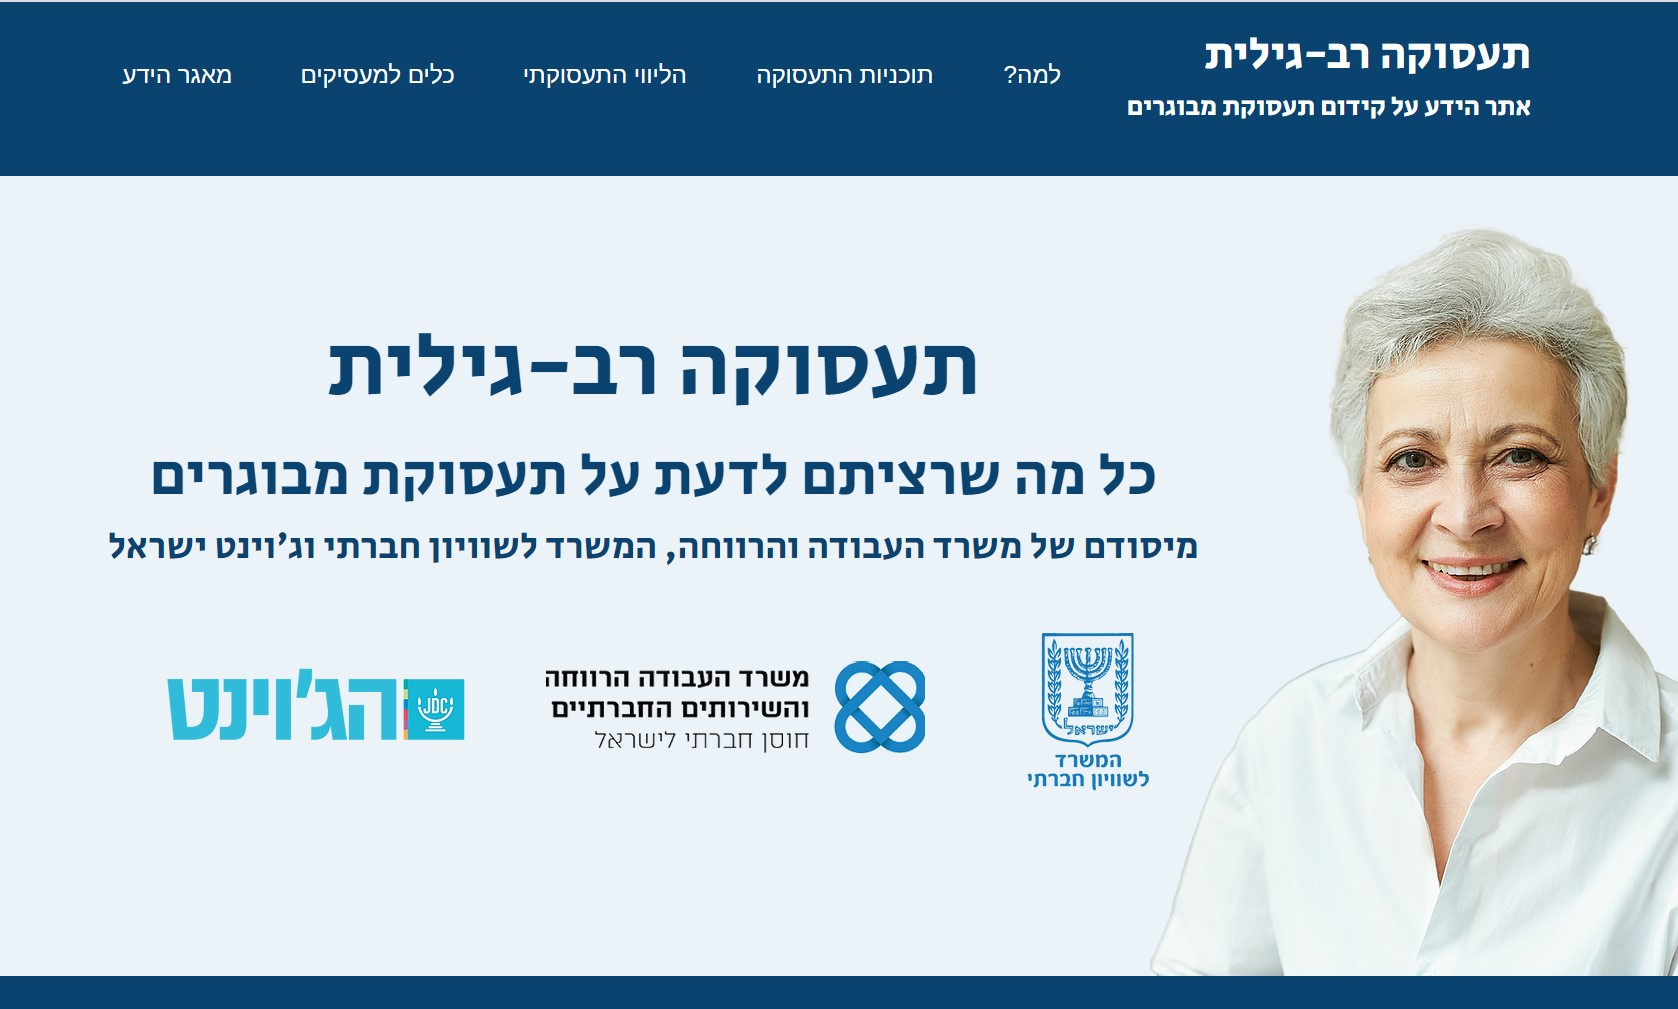 Multi Age Workforce [Hebrew] - Government venture A government project to promote age diverse employ...